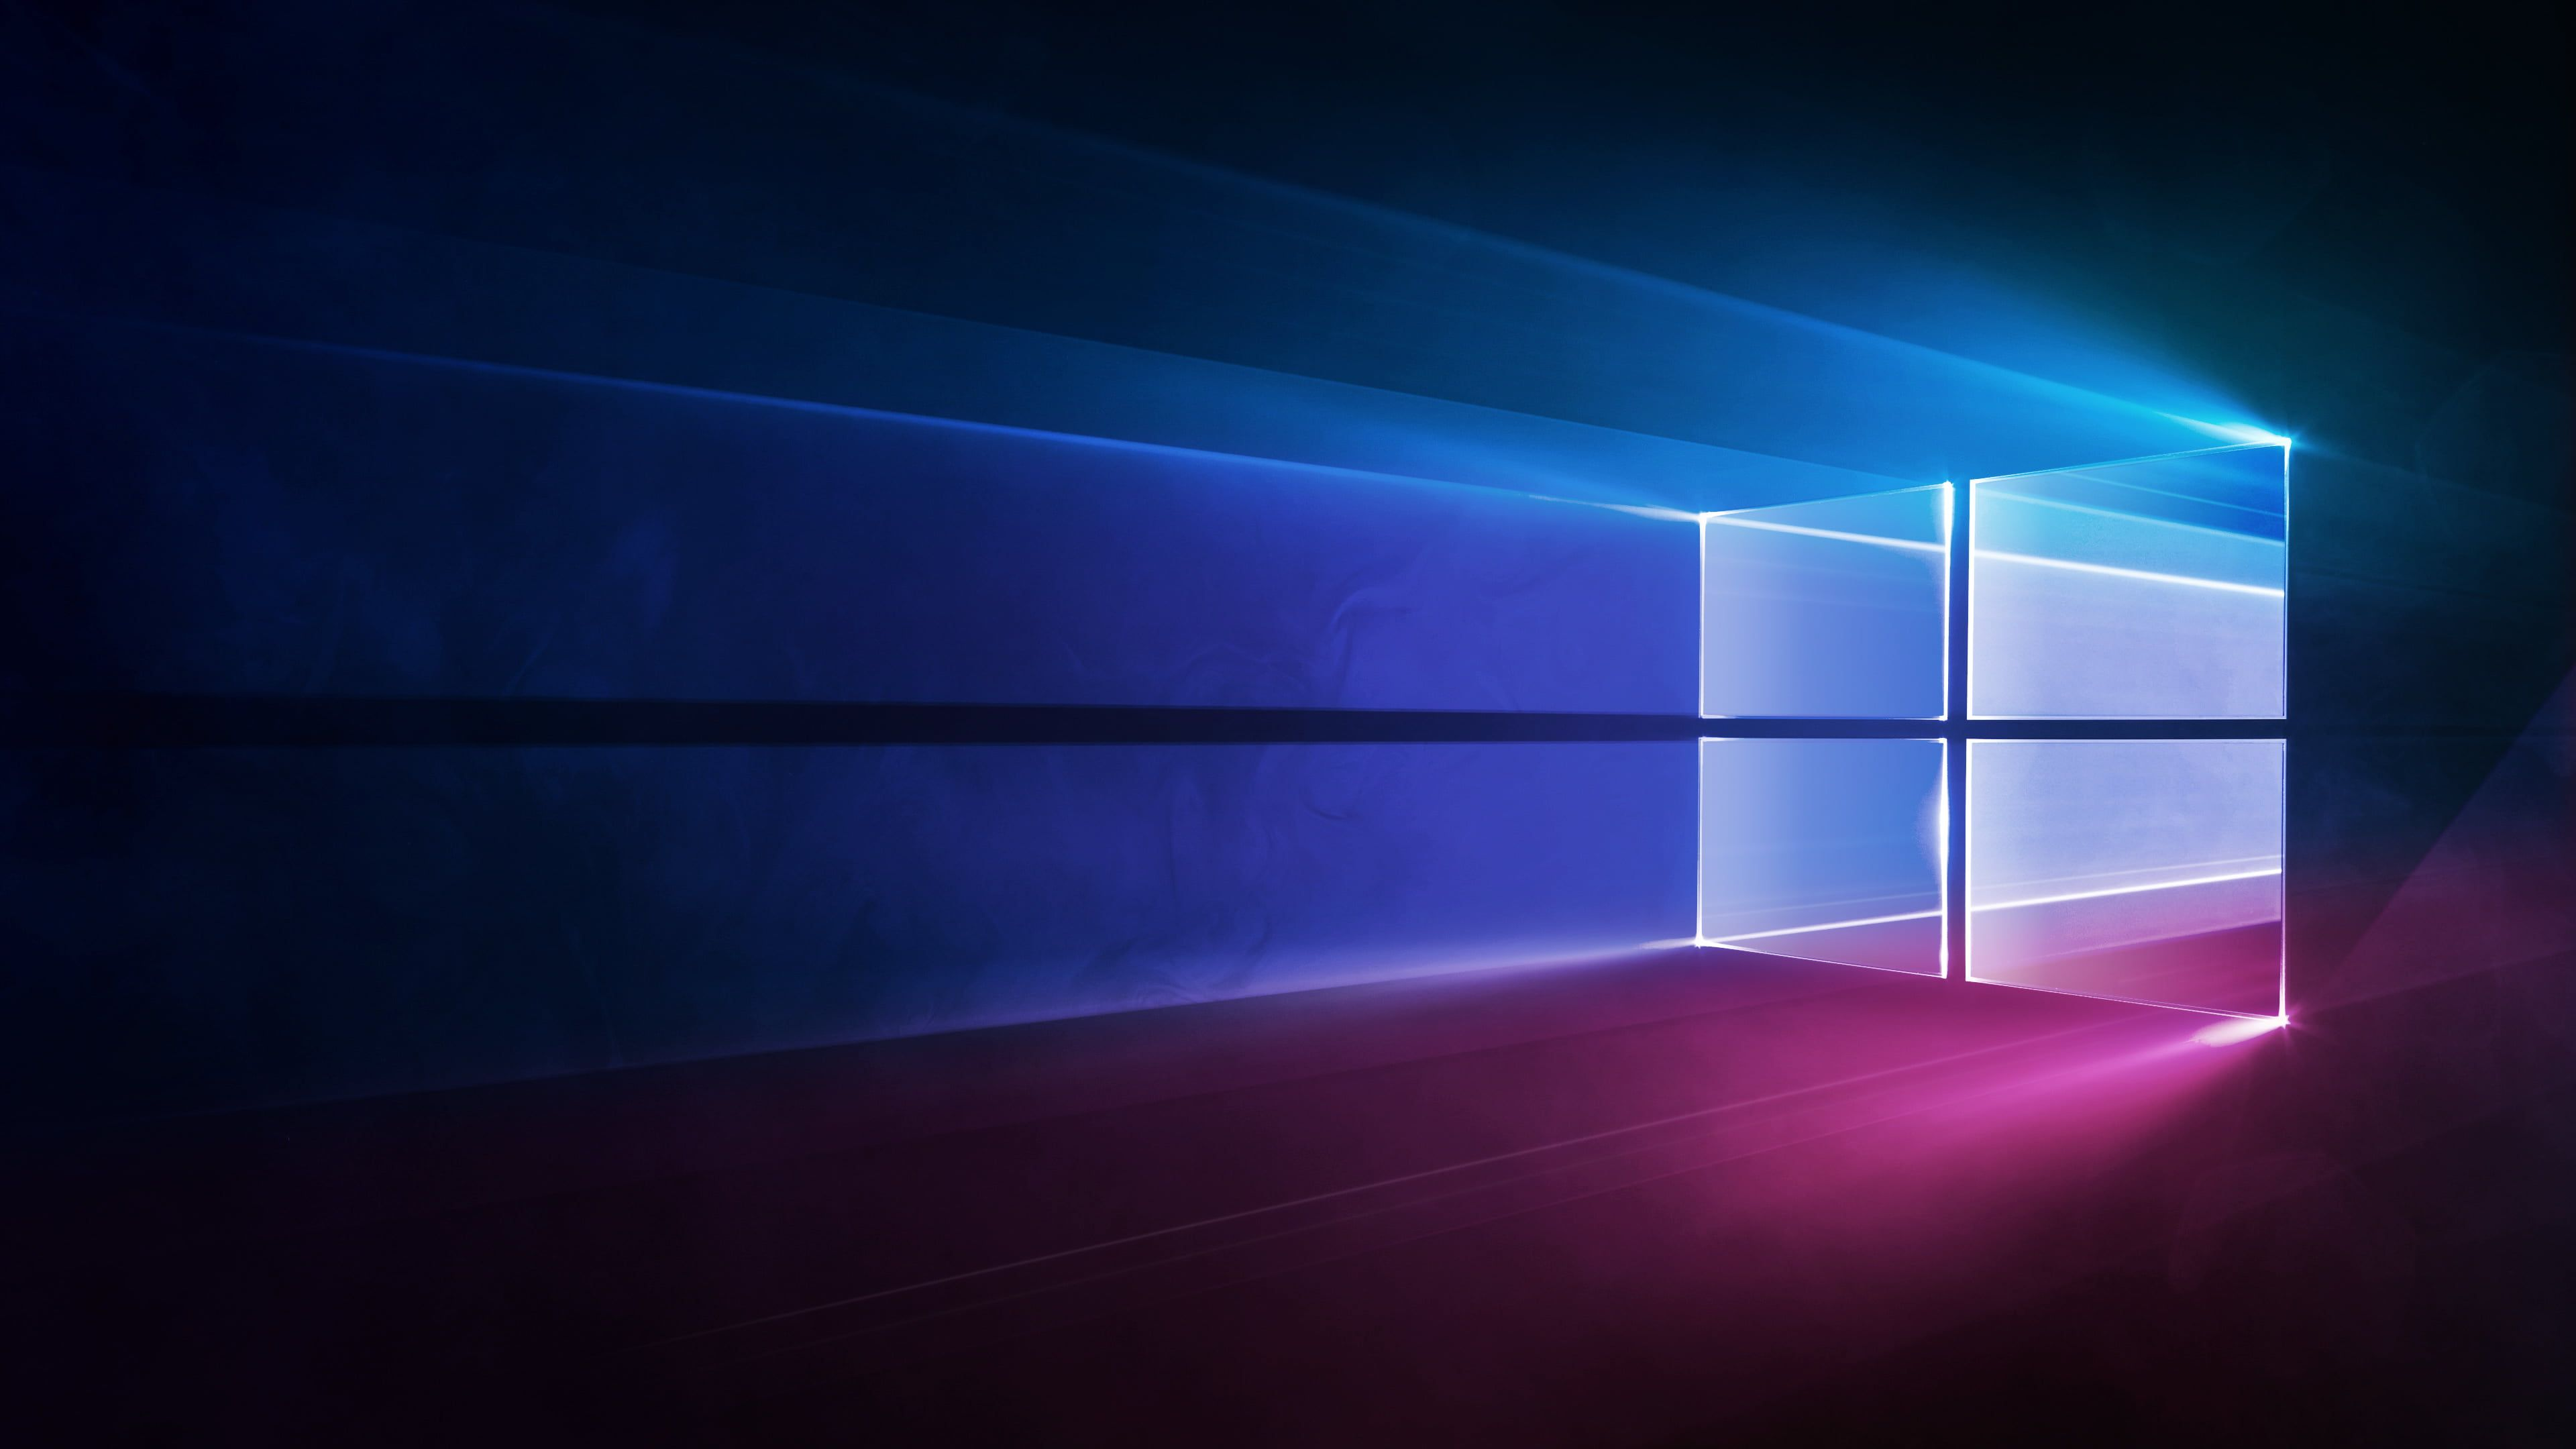 Windows Wallpaper Windows10 Microsoft 4k Wallpaper Hdwallpaper Desktop Windows Wallpaper Microsoft Wallpaper Hd Wallpaper